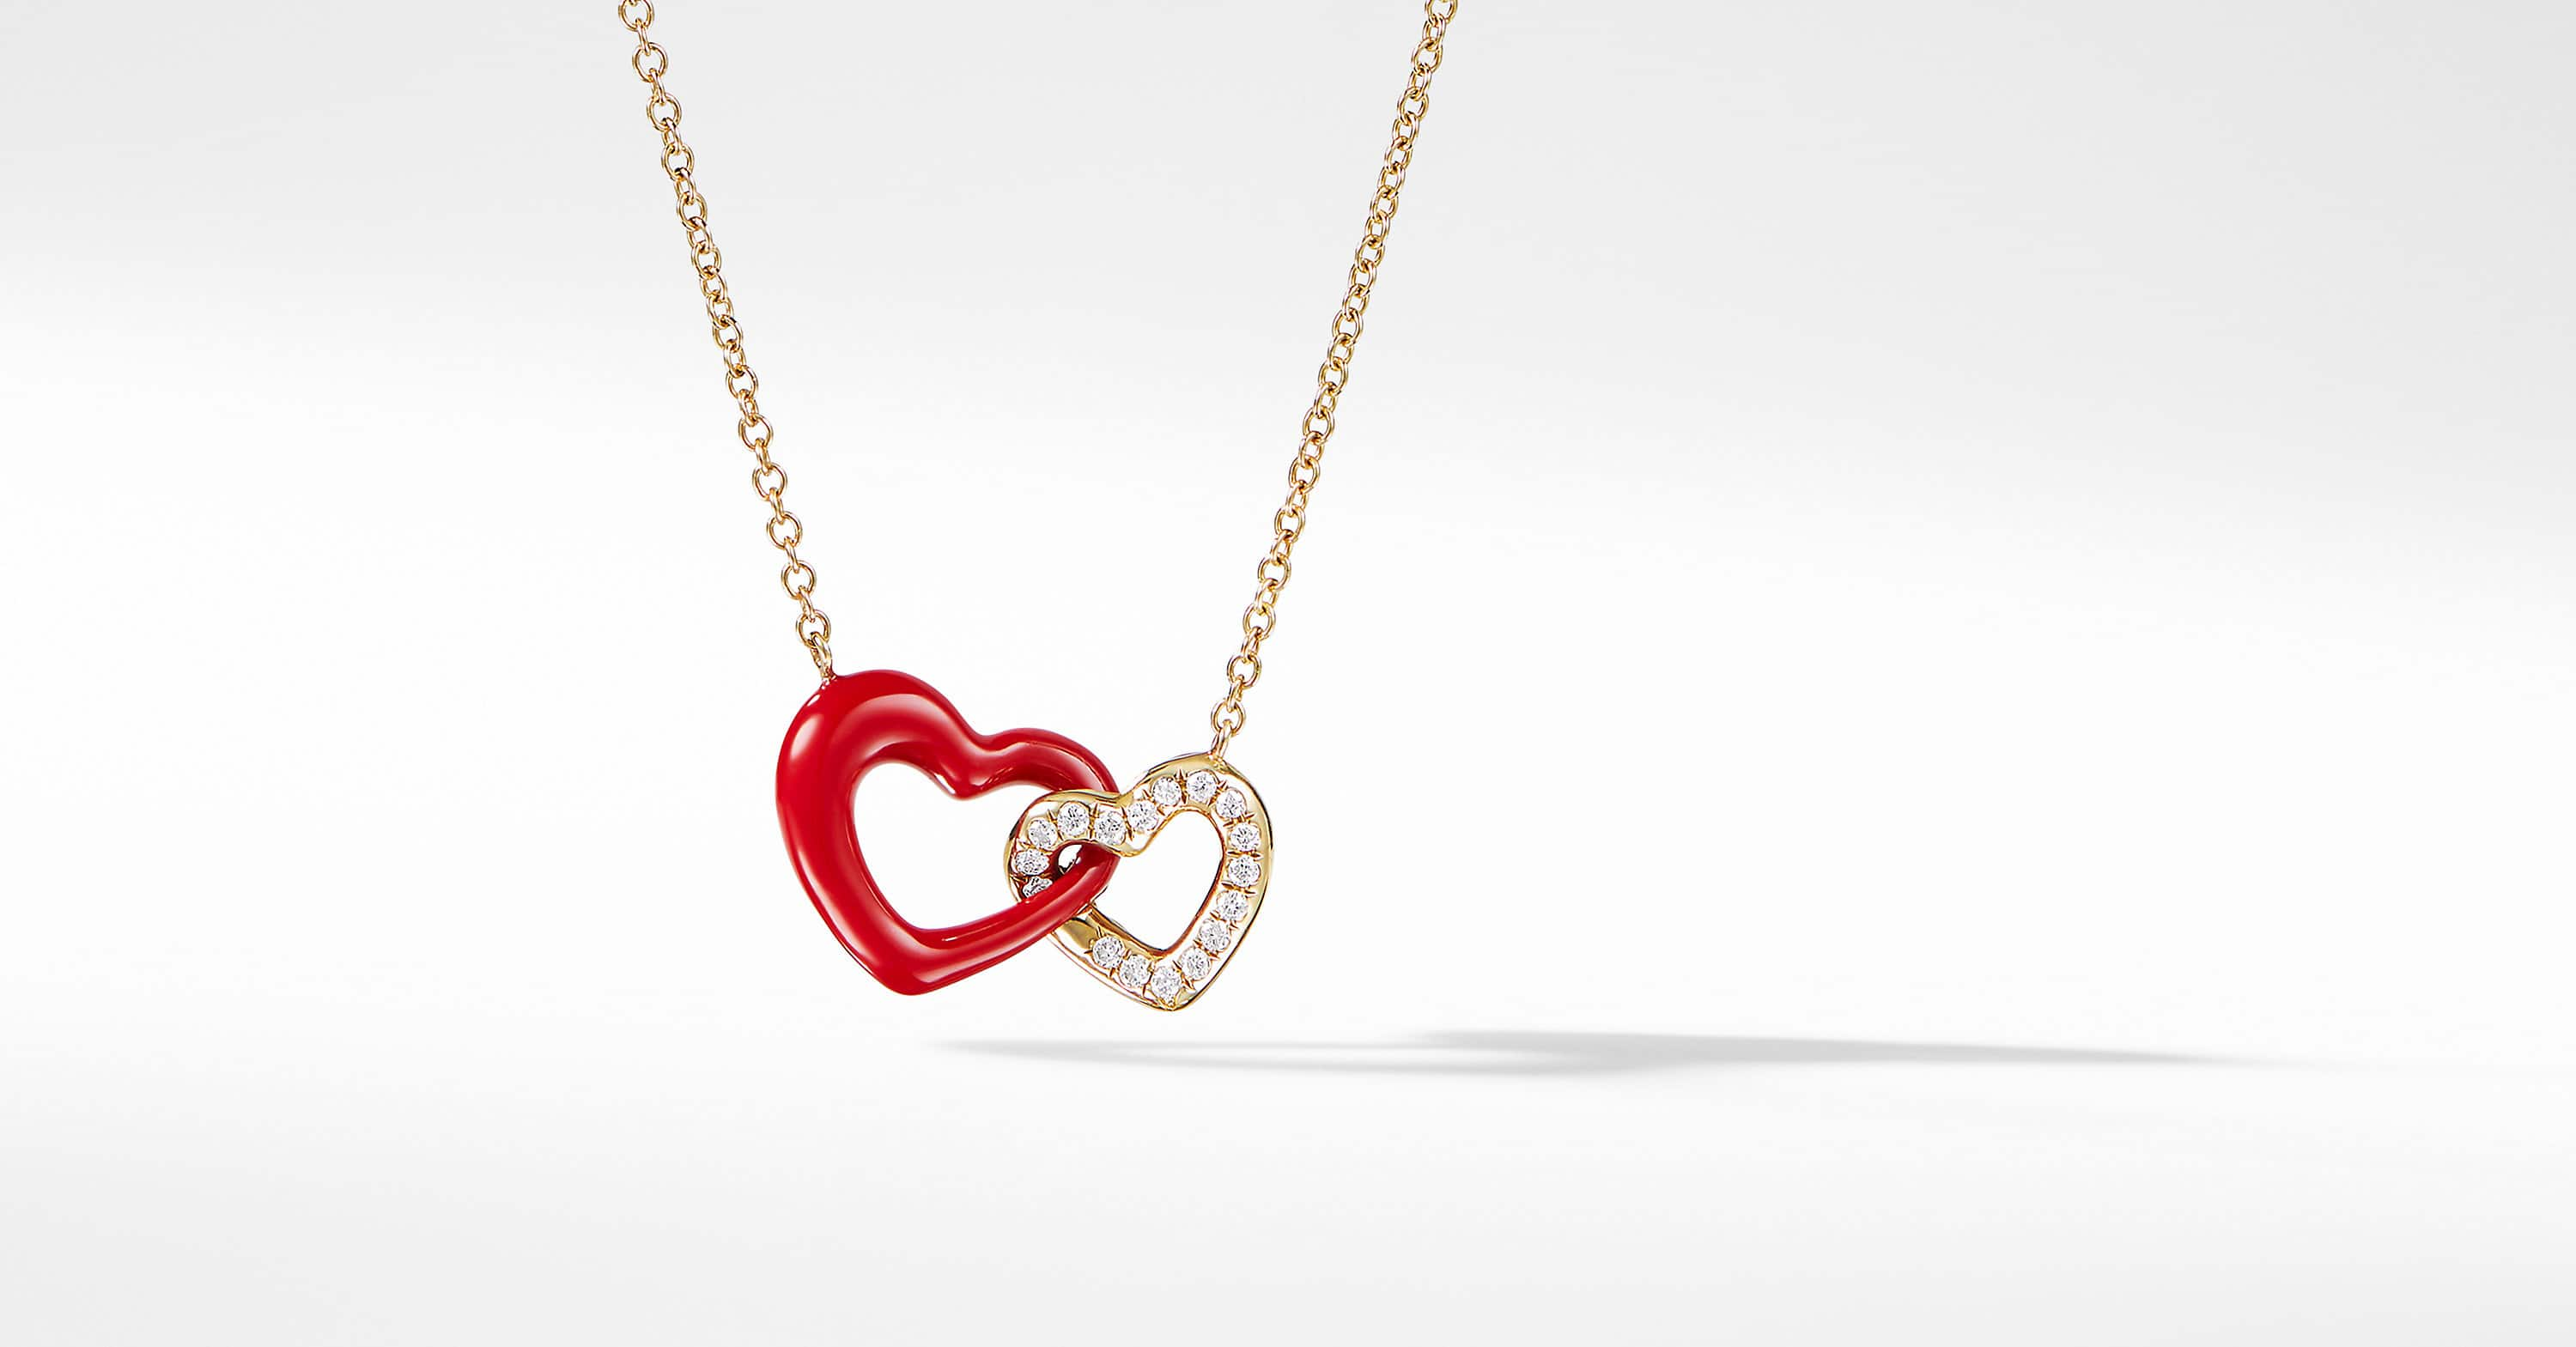 Double Heart Pendant Necklace with Diamonds and 18K Gold